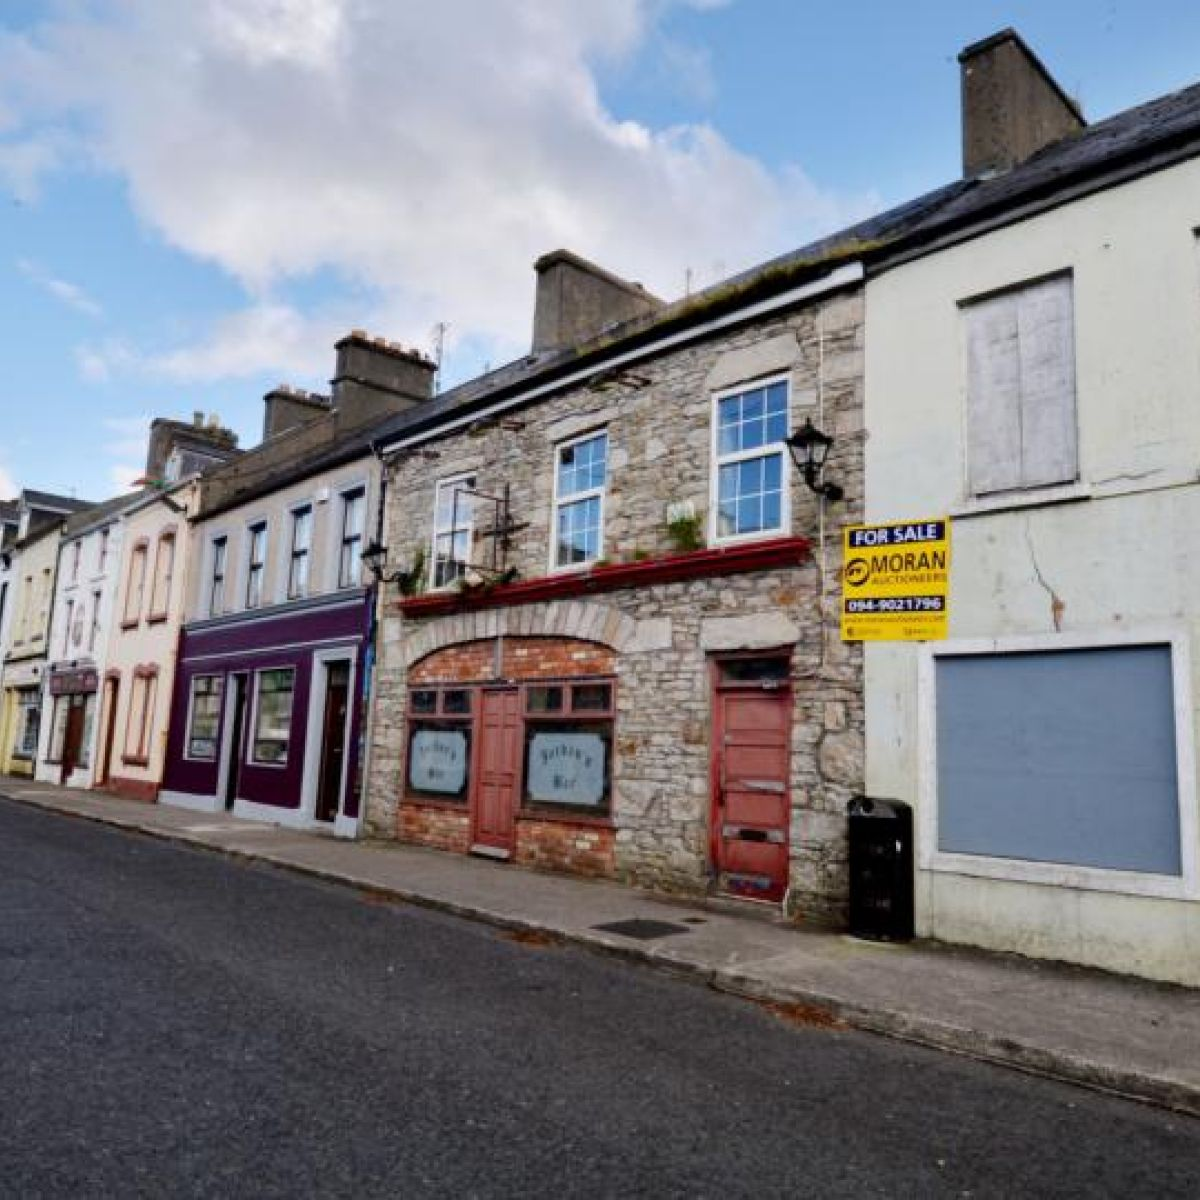 The best available hotels & places to stay near Ballyhaunis